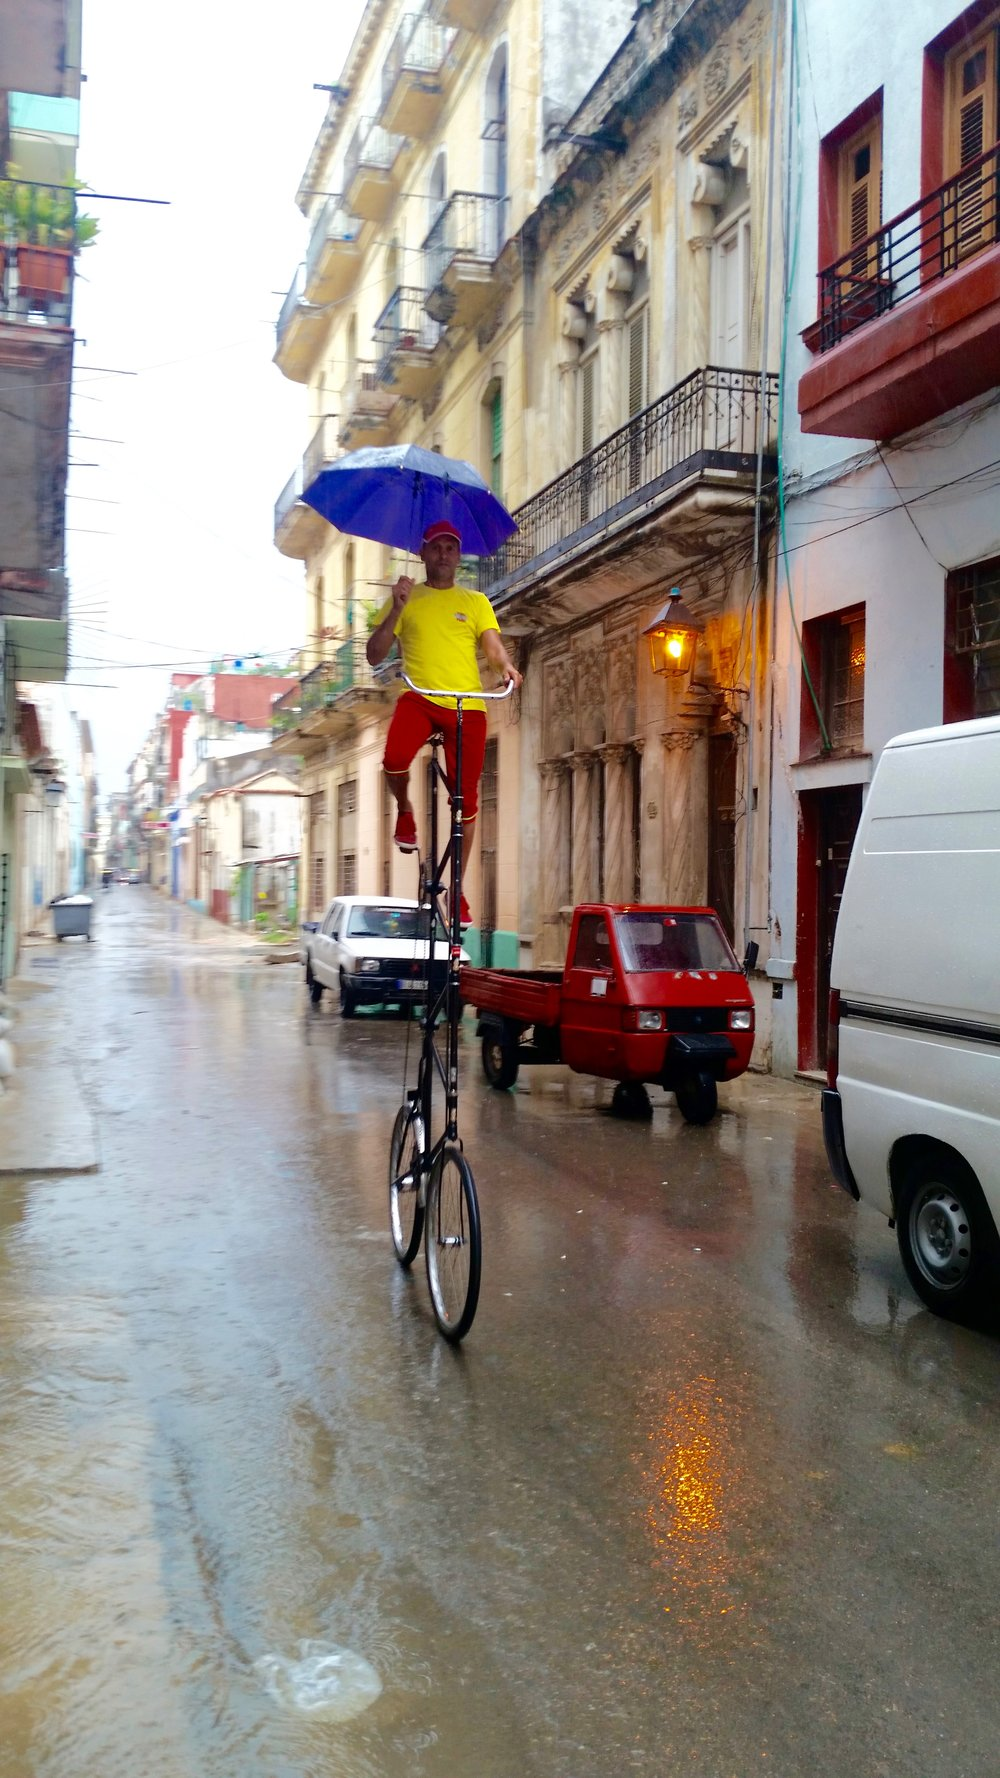 Felix Guirola riding his bike on a rainy day in Old Havana